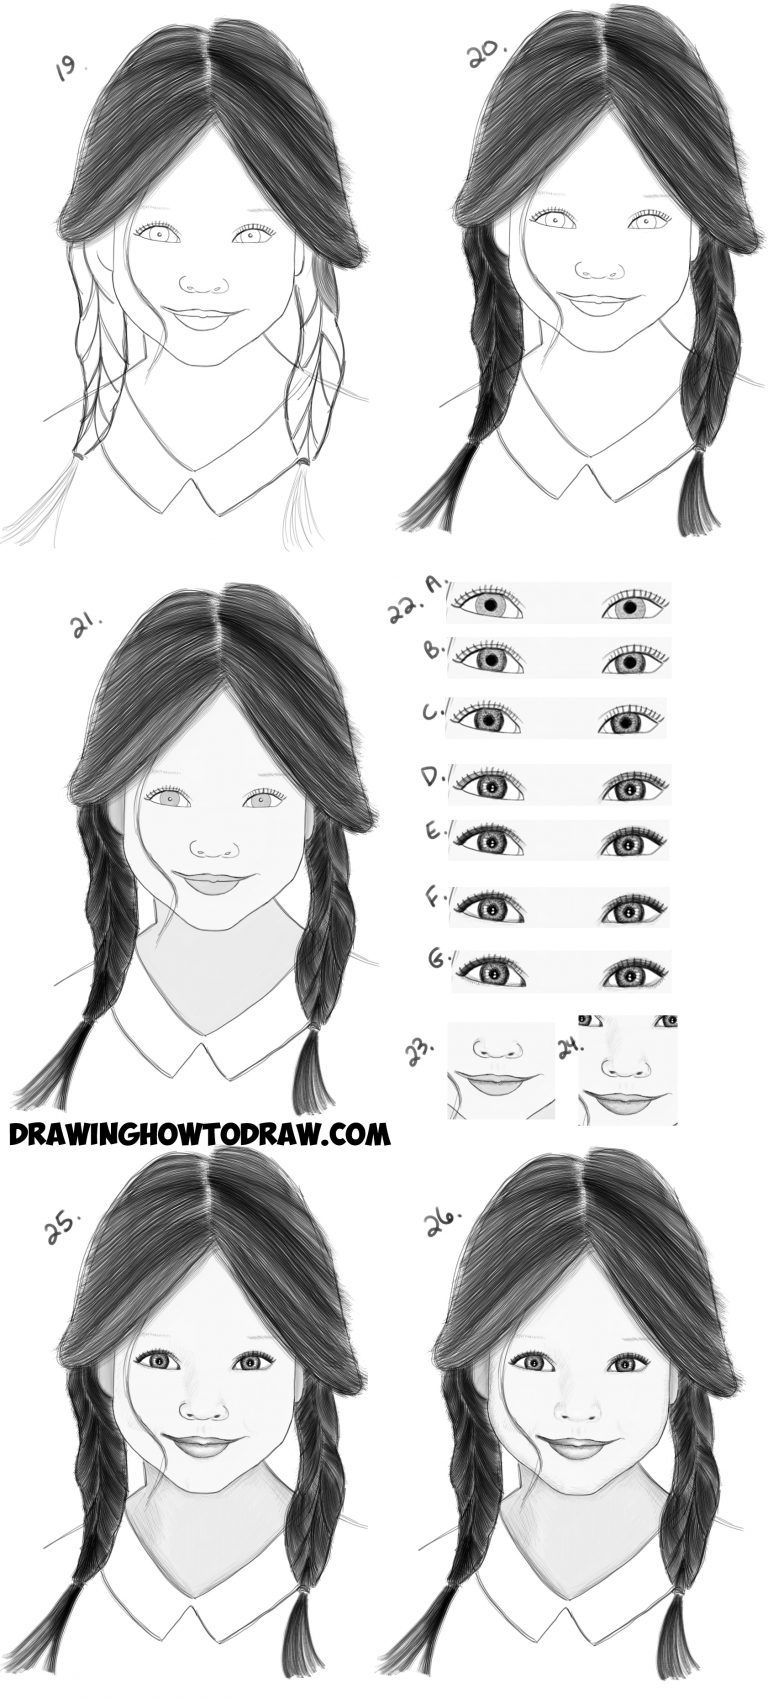 Drawing Hairstyles For Your Characters Drawing Tutorials For Beginners Girl Face Drawing Realistic Drawings